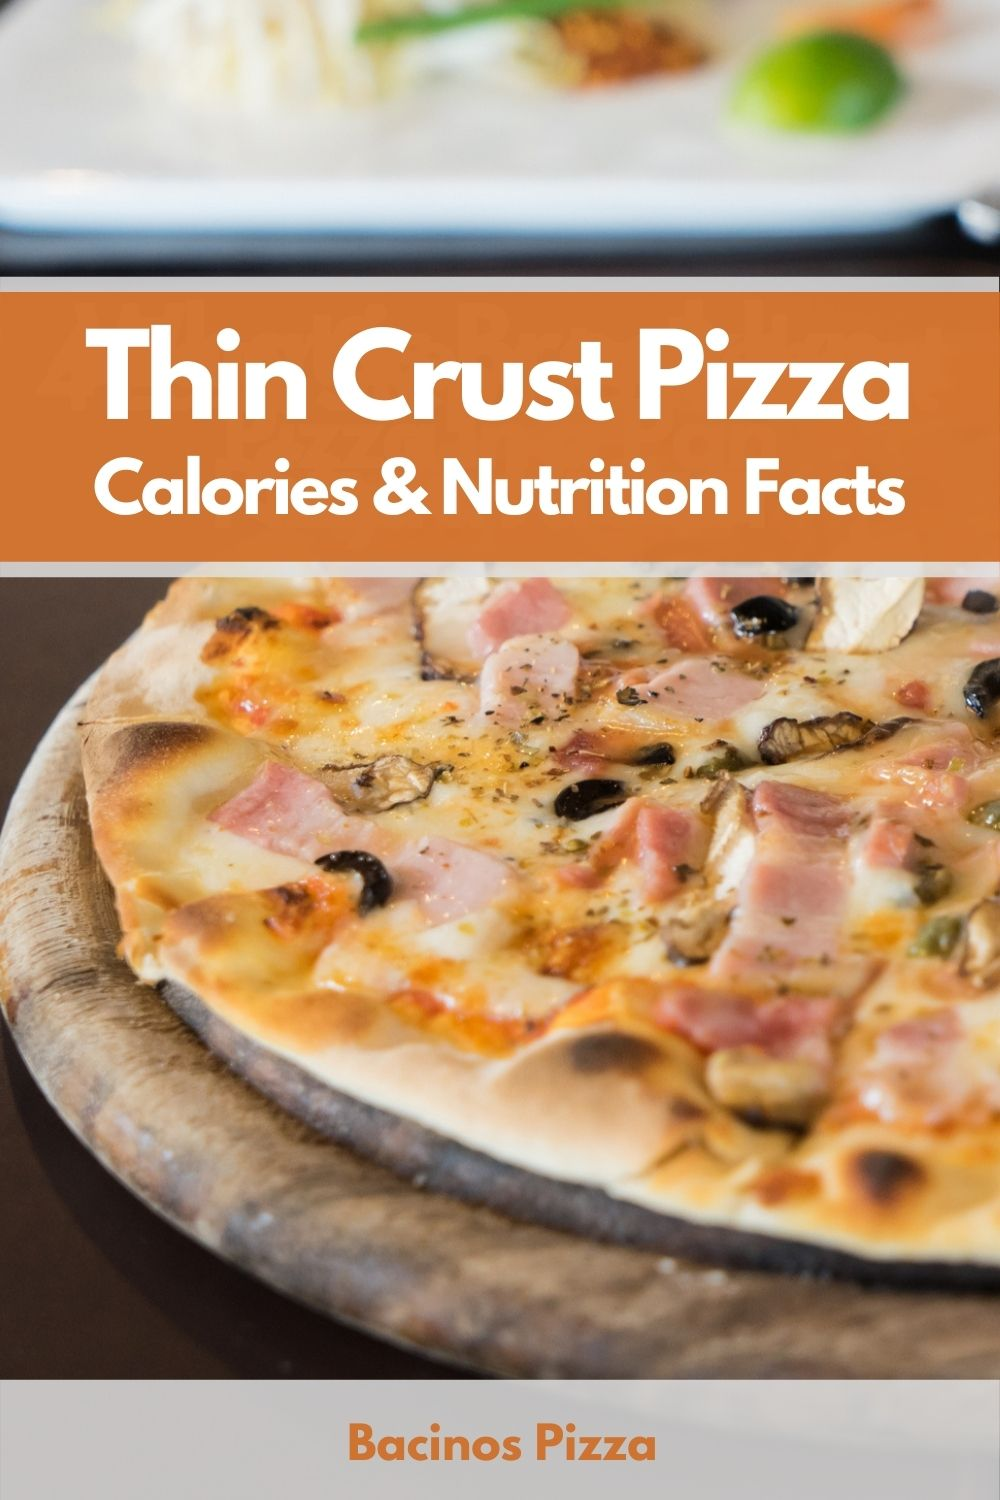 Thin Crust Pizza Calories & Nutrition Facts pin 2